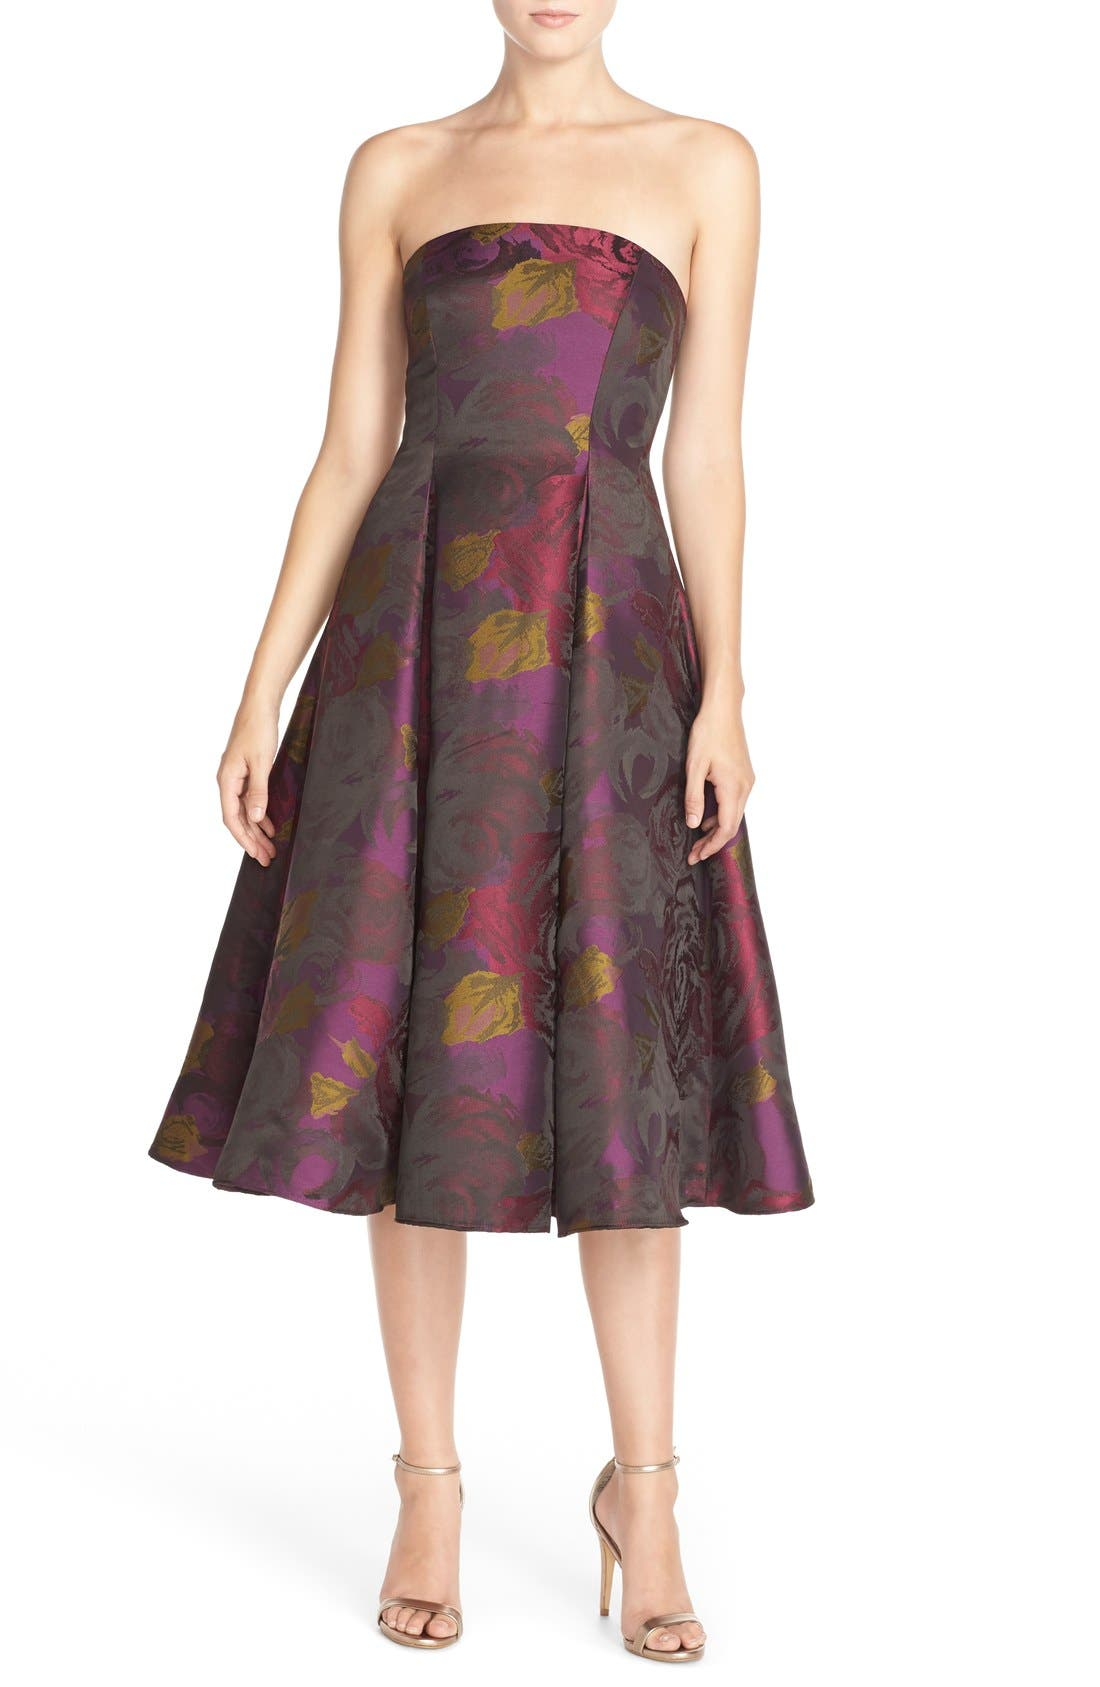 Alternate Image 1 Selected - Adrianna Papell Jacquard Tea Length Fit & Flare Dress